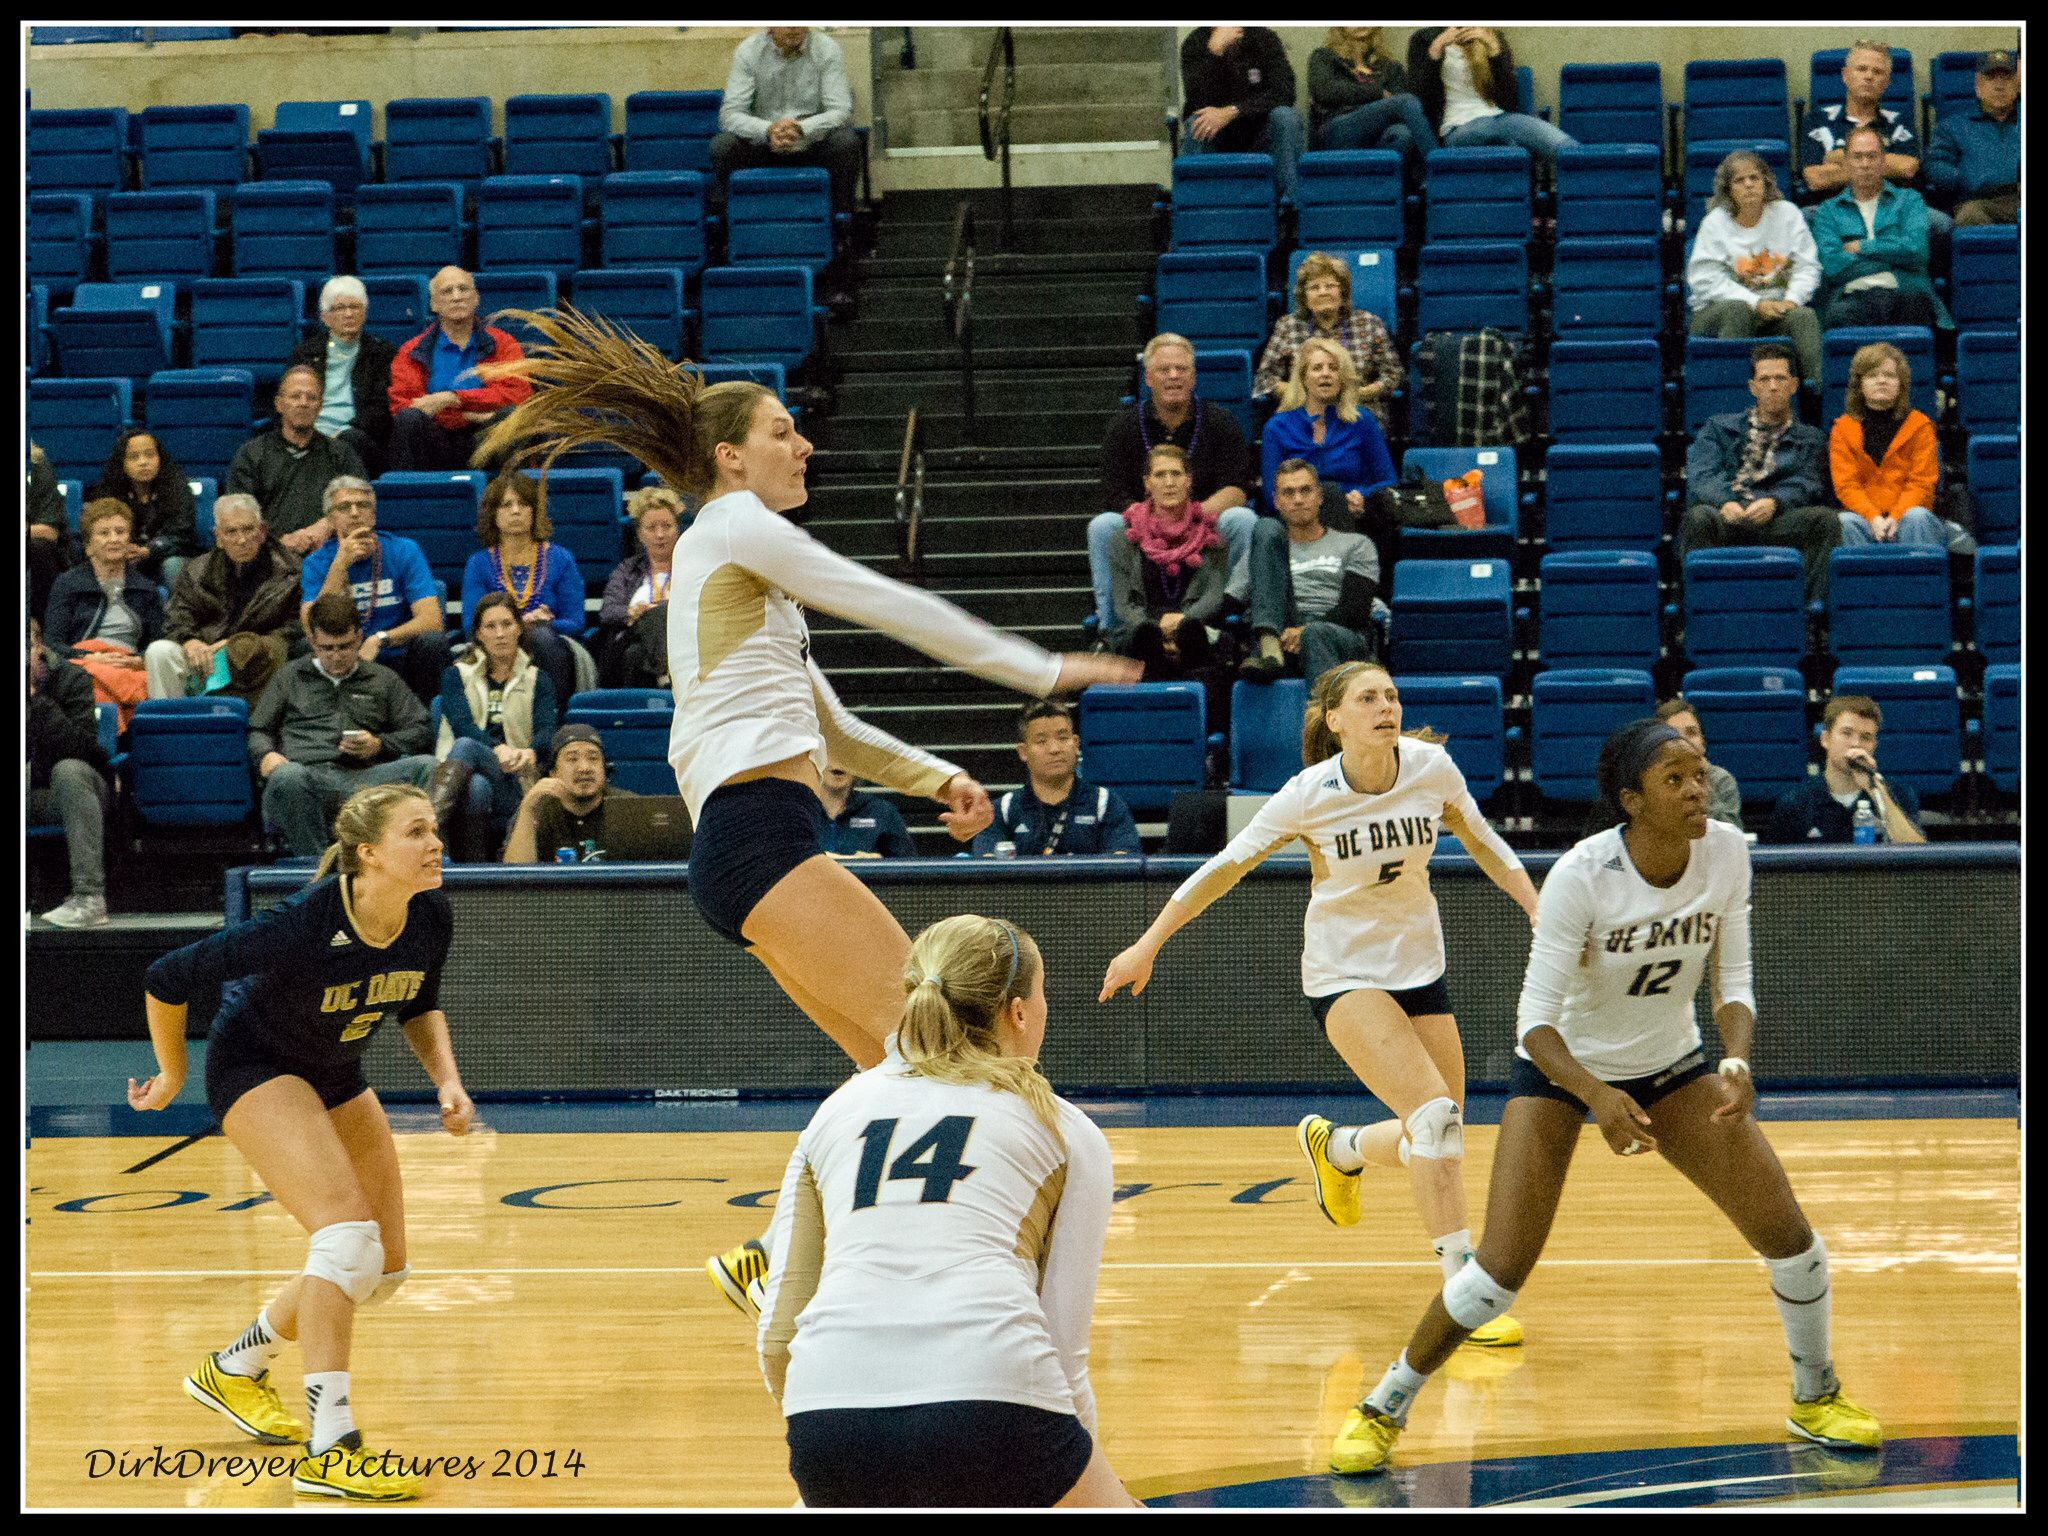 Uc Davis Woman S Volleyball Women Volleyball Volleyball Women